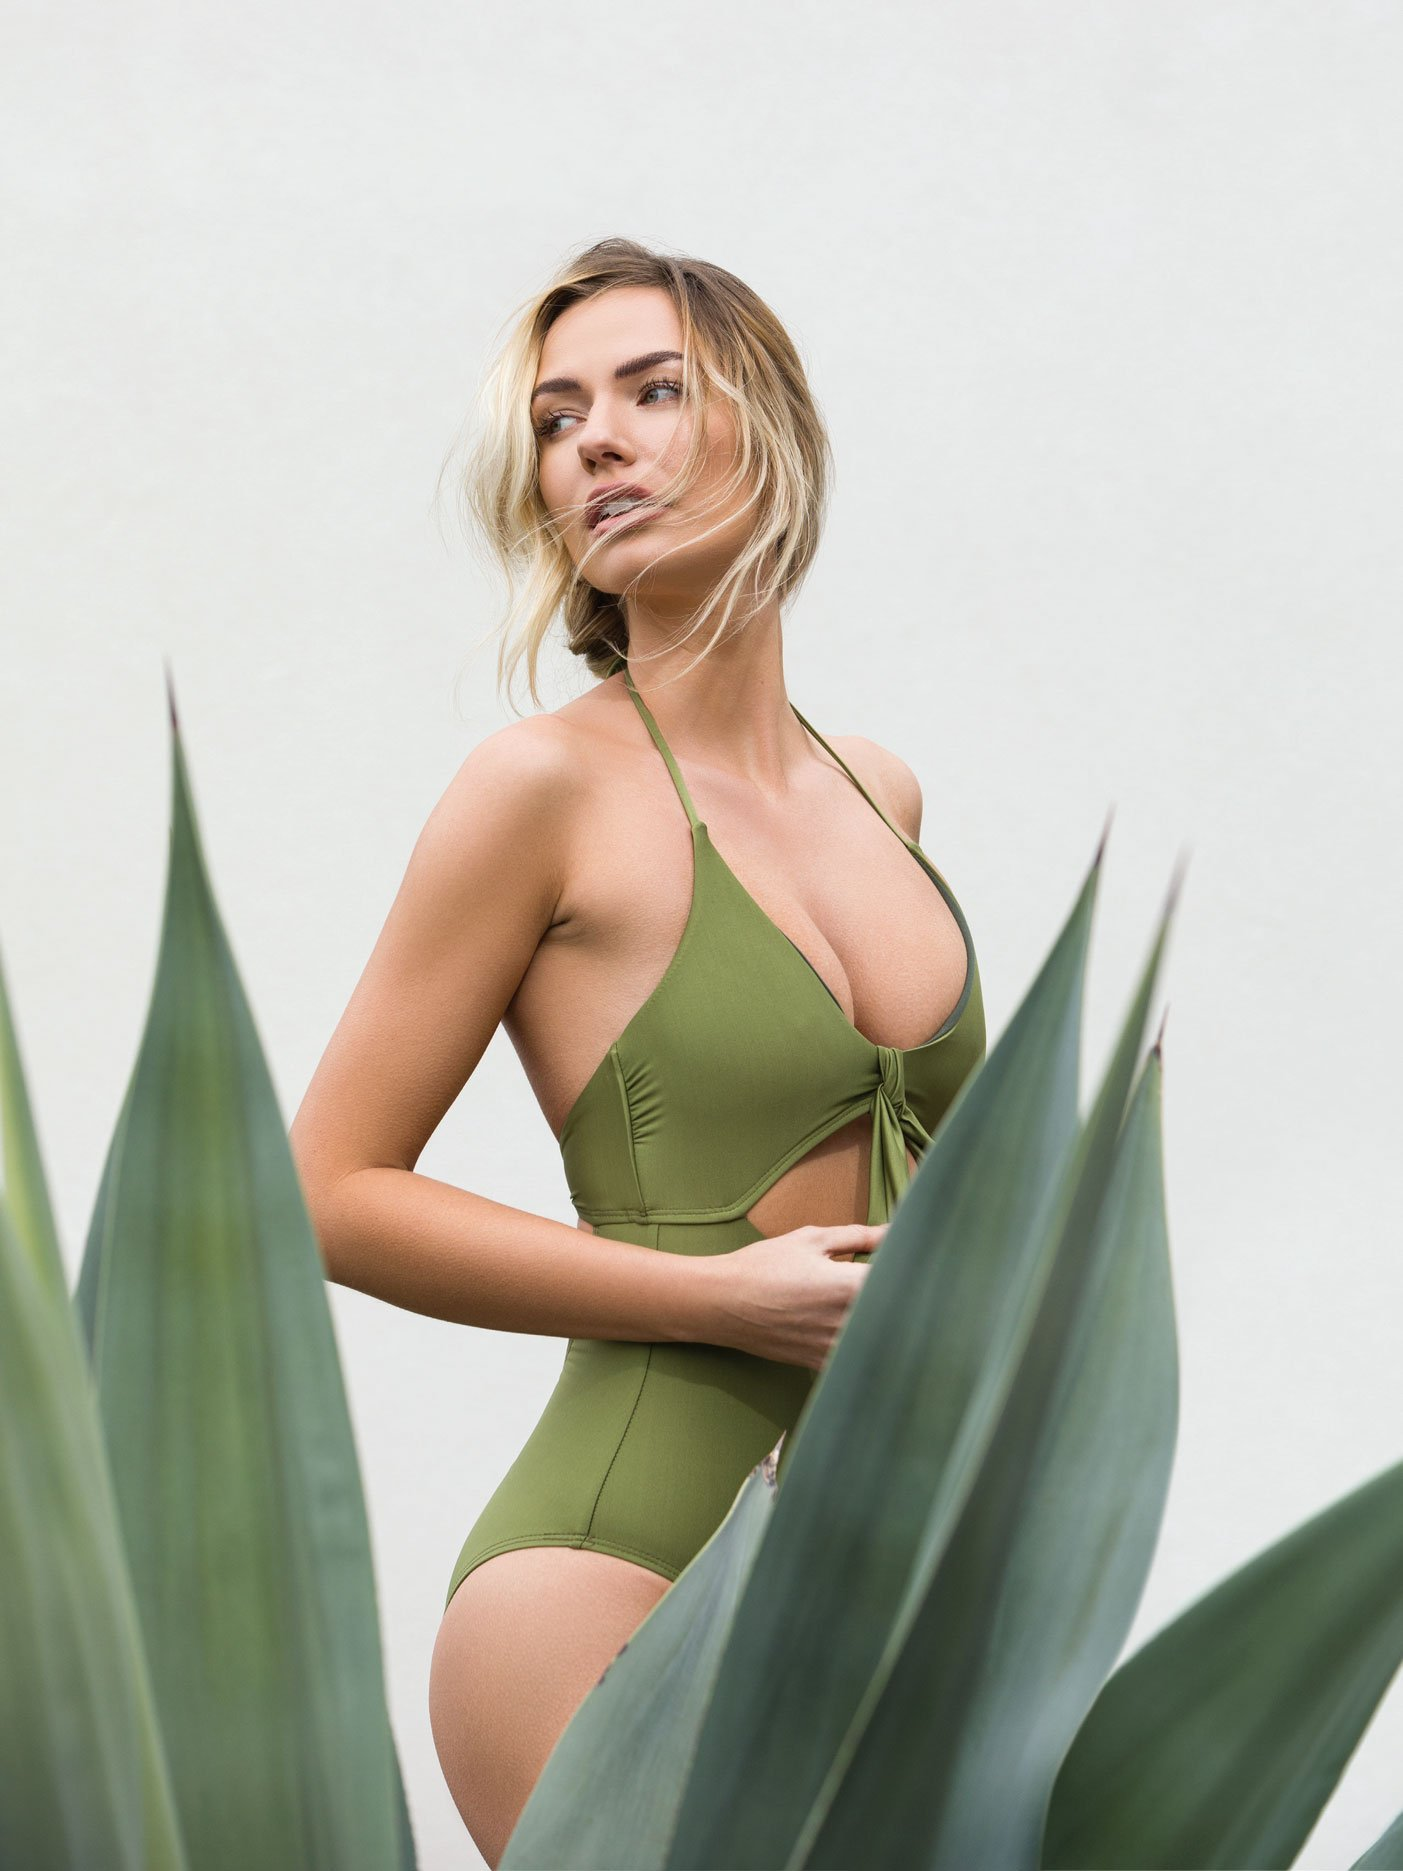 Vicious Young Babes olive swimsuit